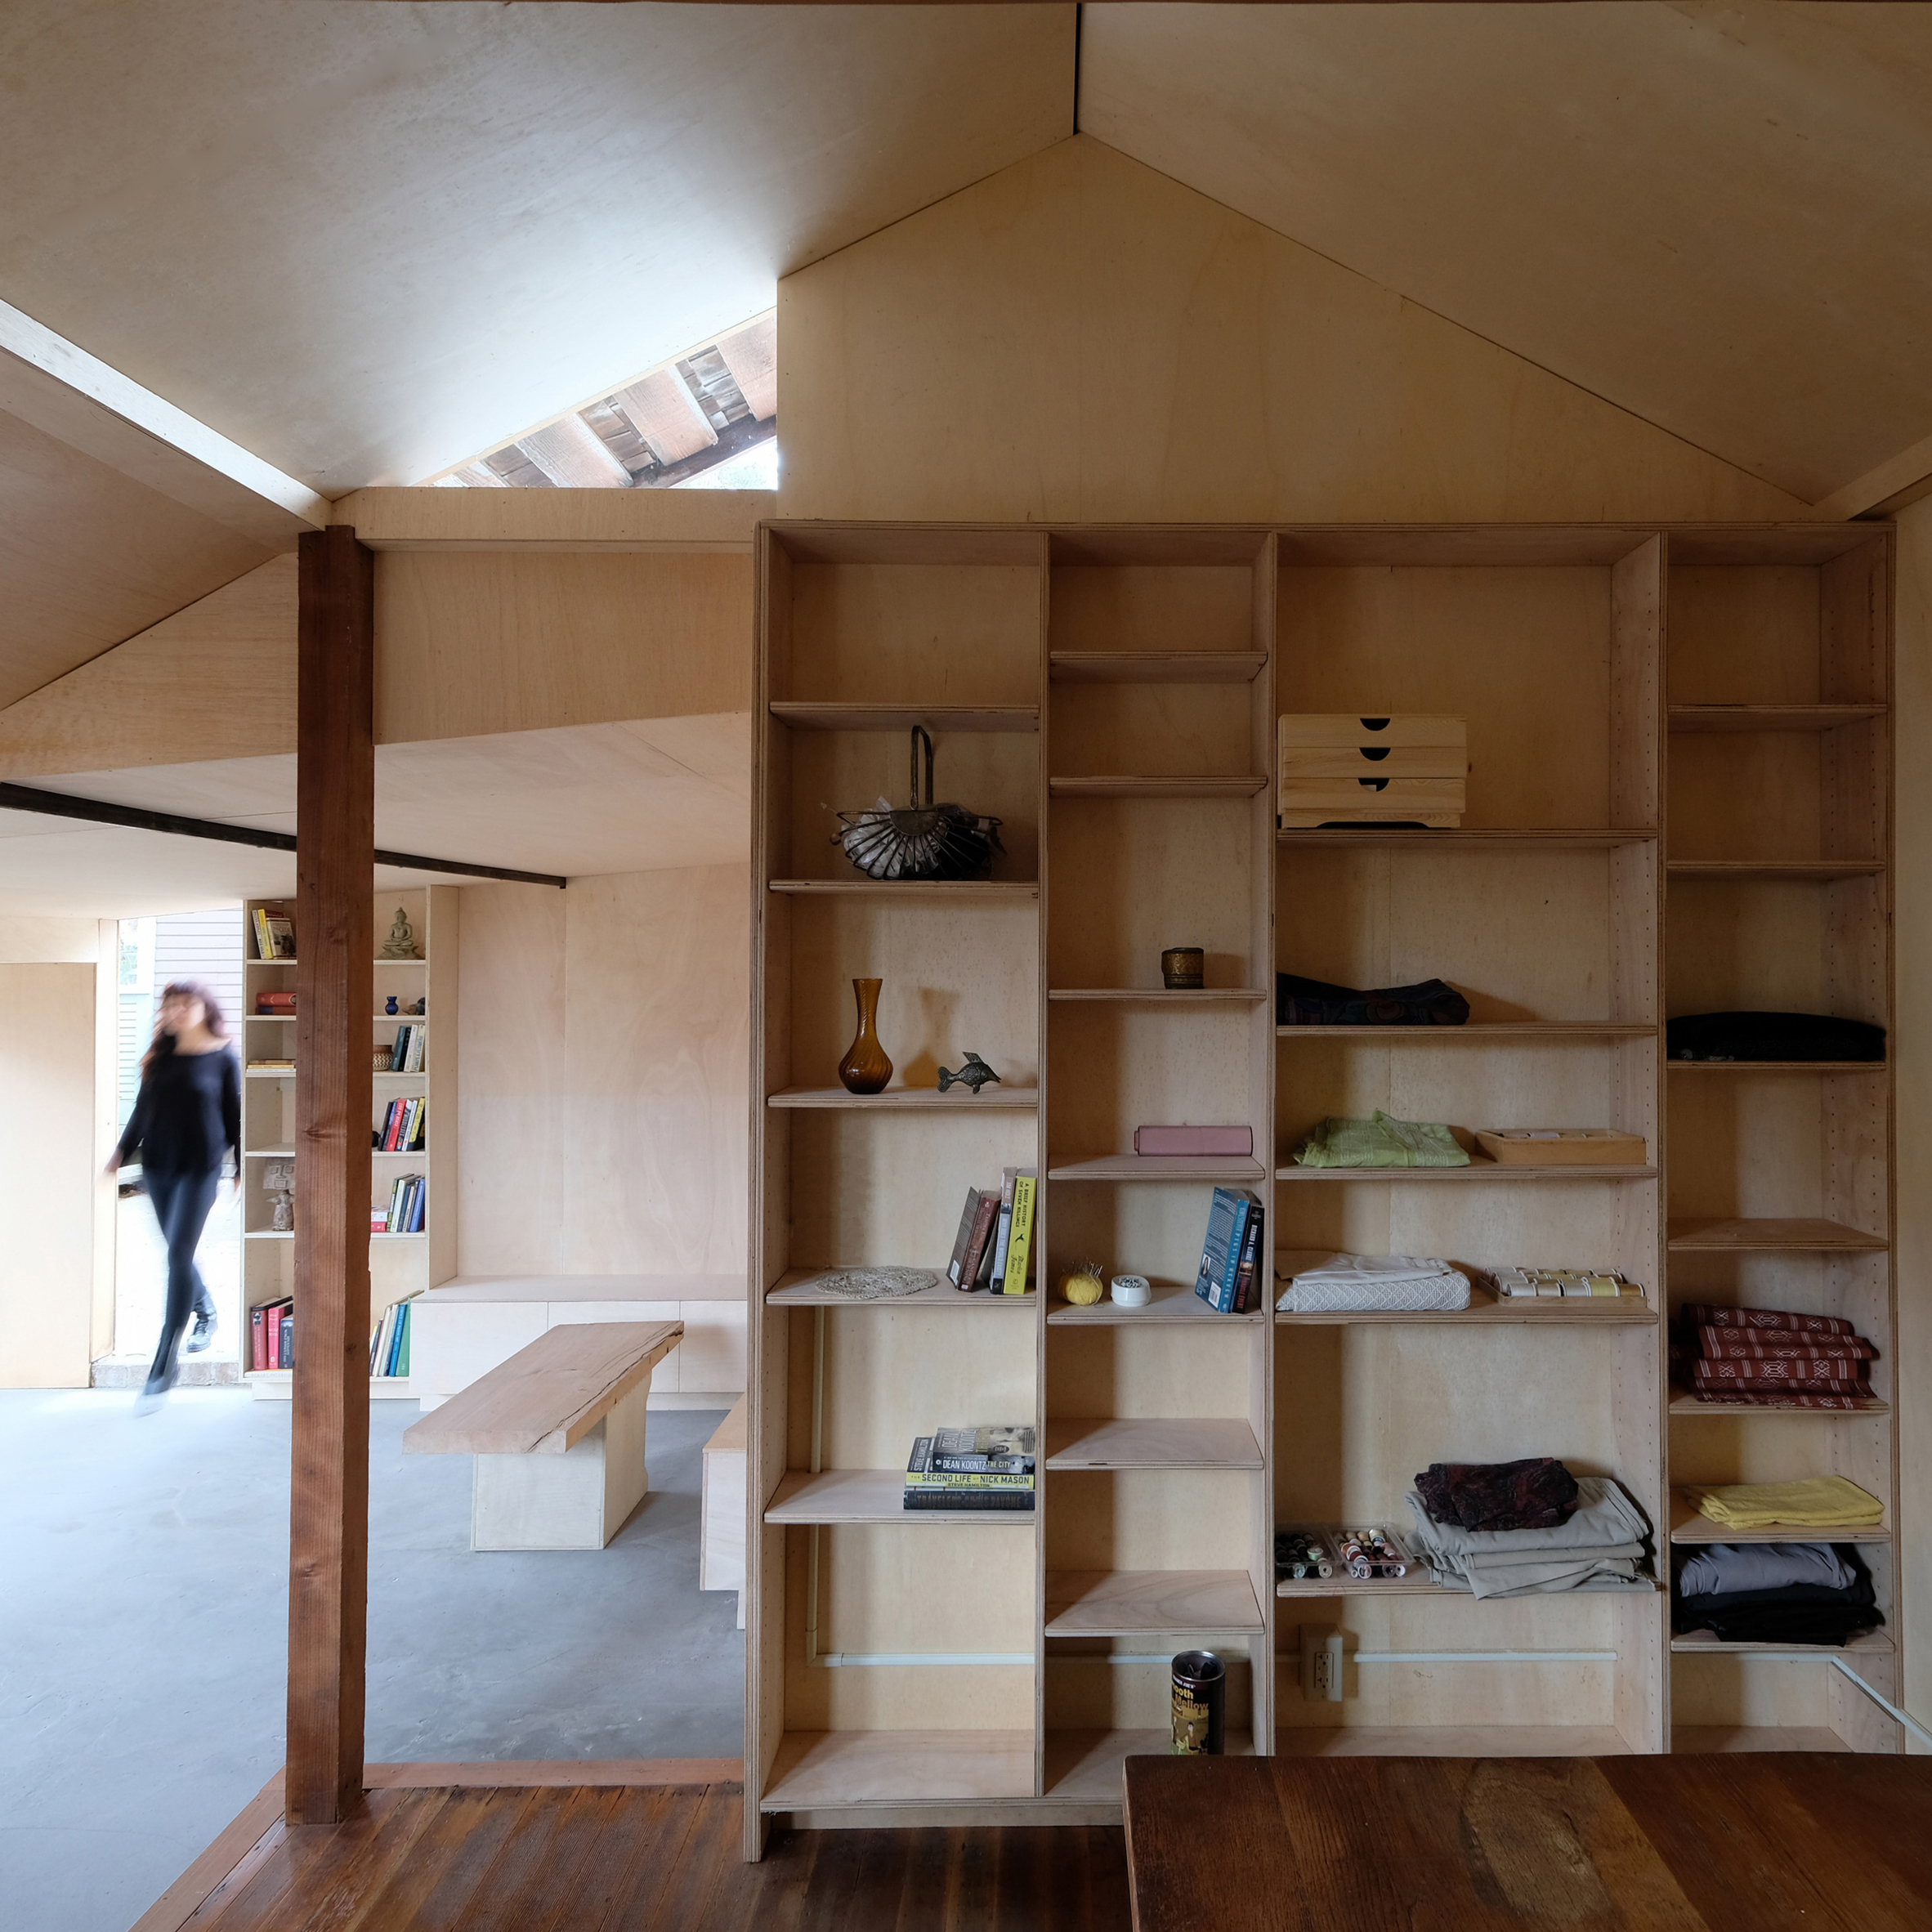 ArcHive turns Californian carriage house into plywood-lined sewing studio